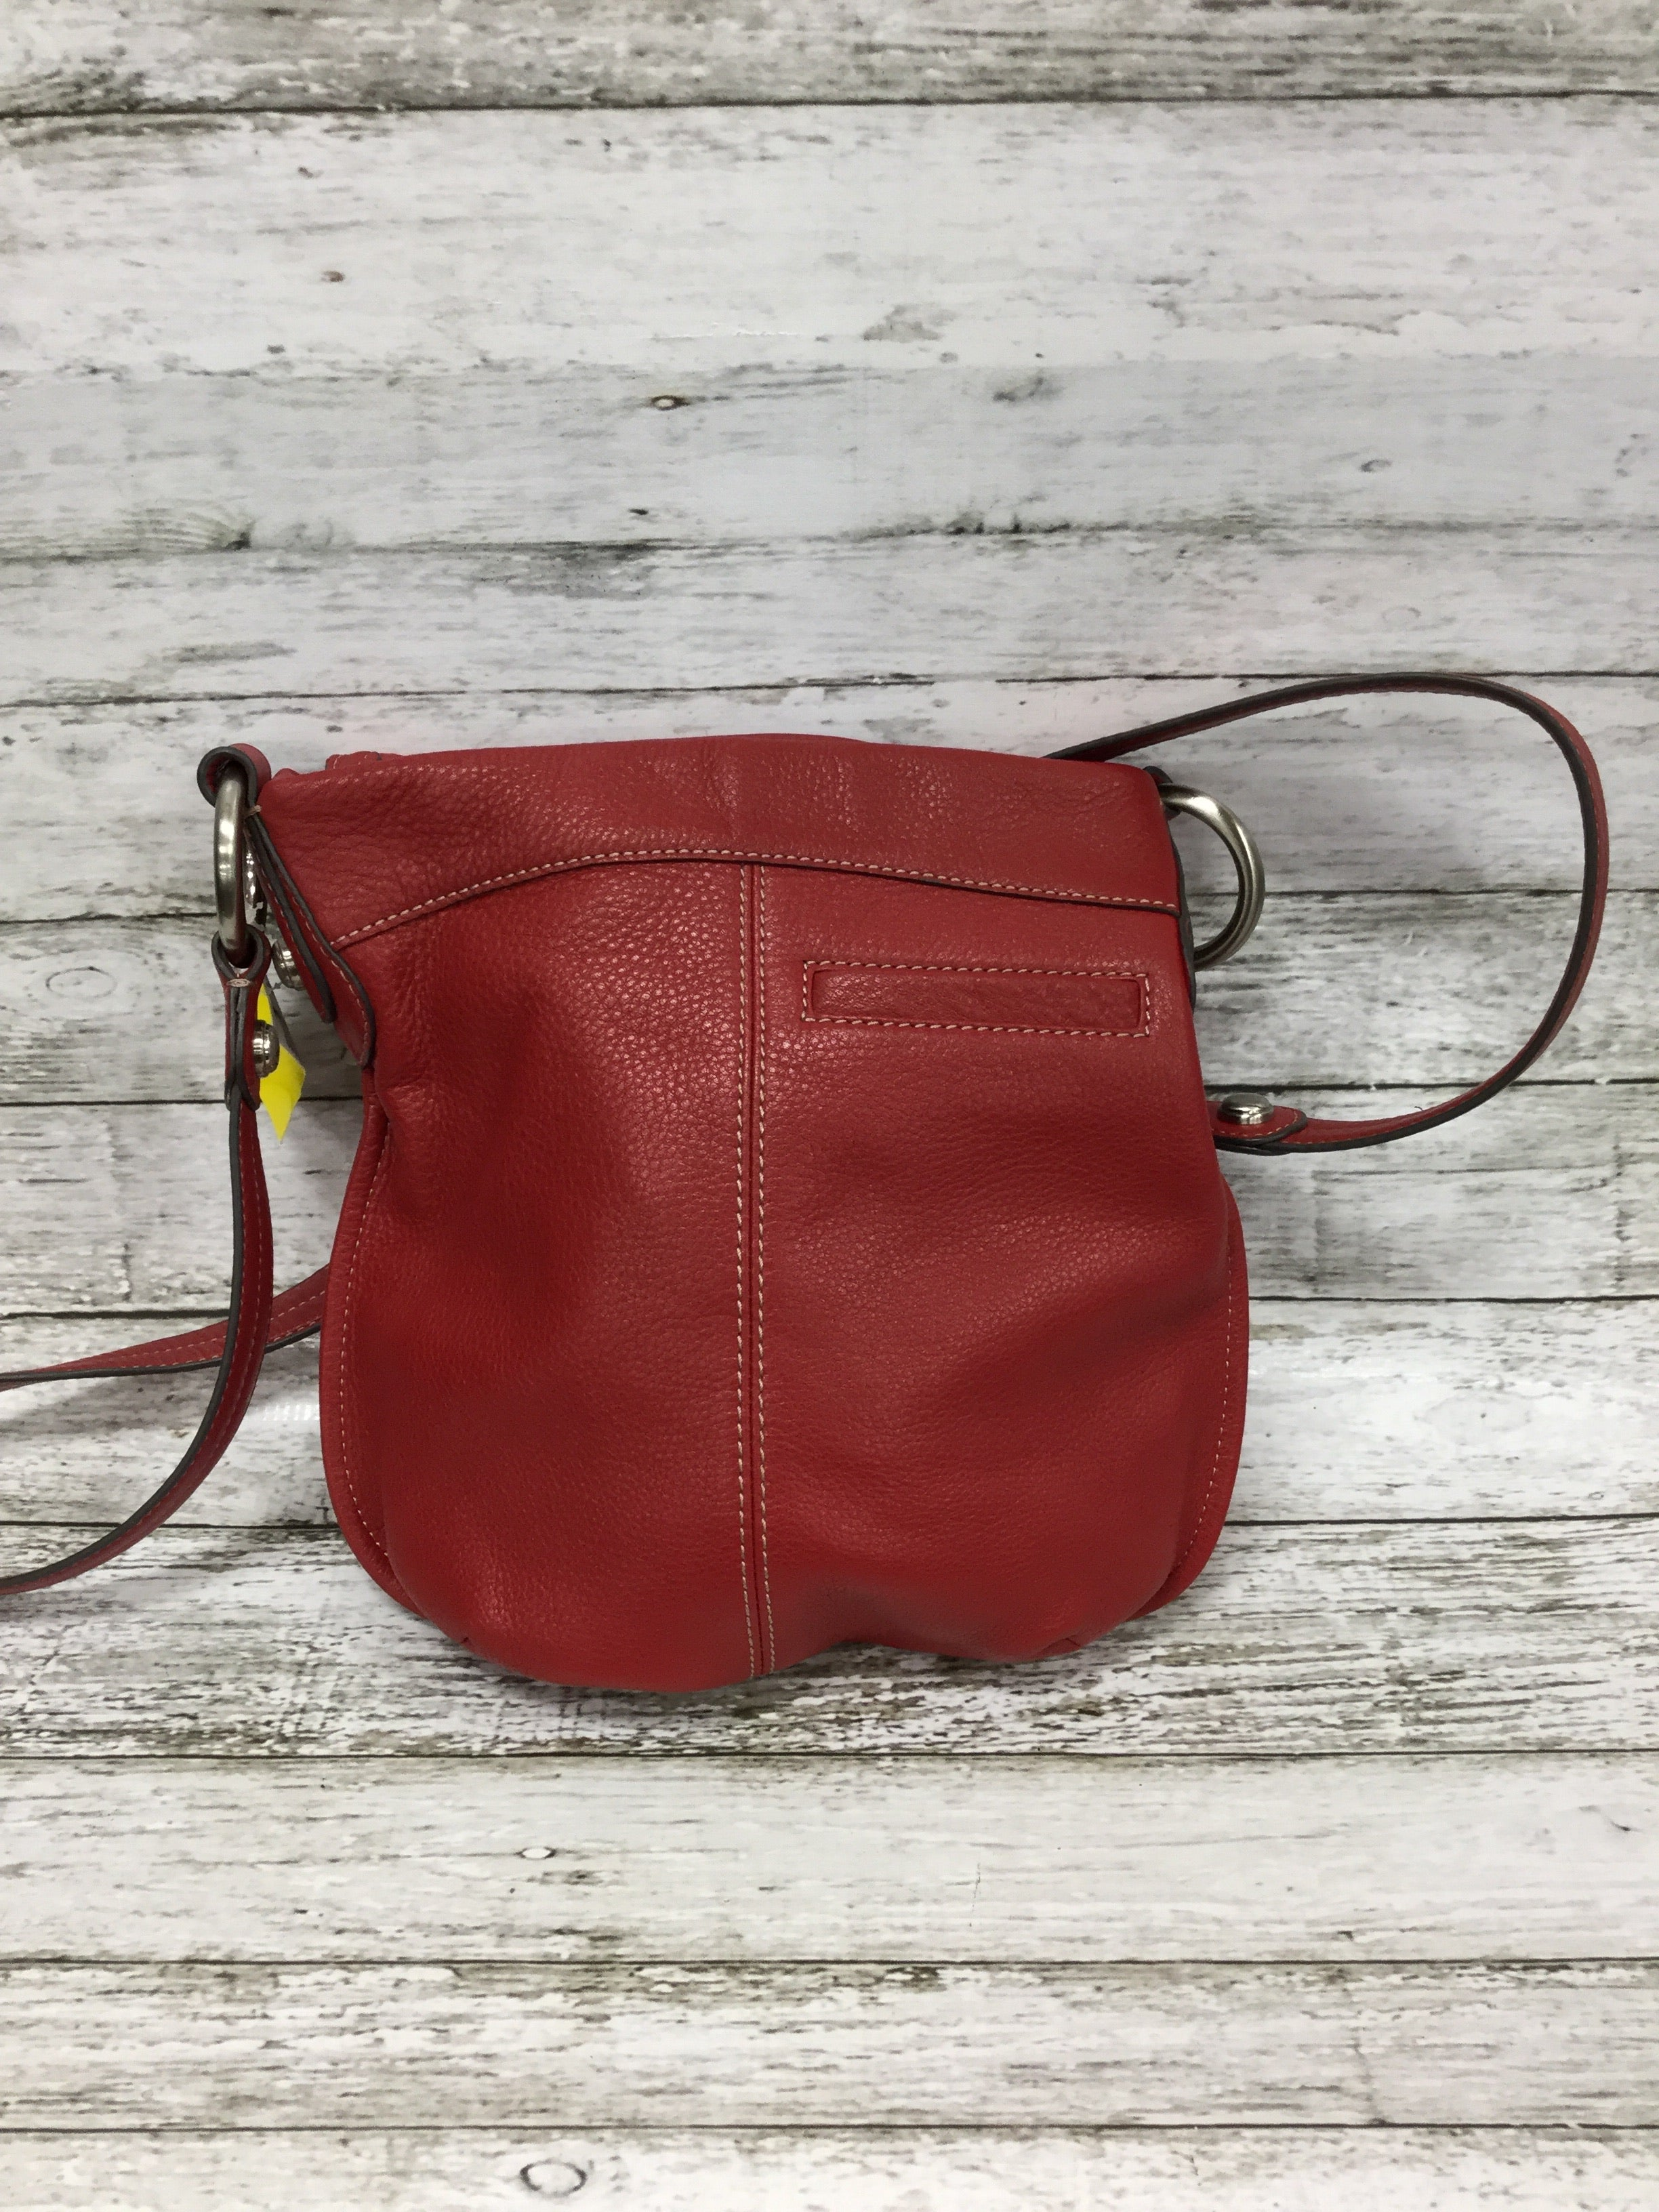 Photo #1 - BRAND: B MAKOWSKY <BR>STYLE: HANDBAG DESIGNER <BR>COLOR: RED <BR>SIZE: MEDIUM <BR>SKU: 127-4954-4380